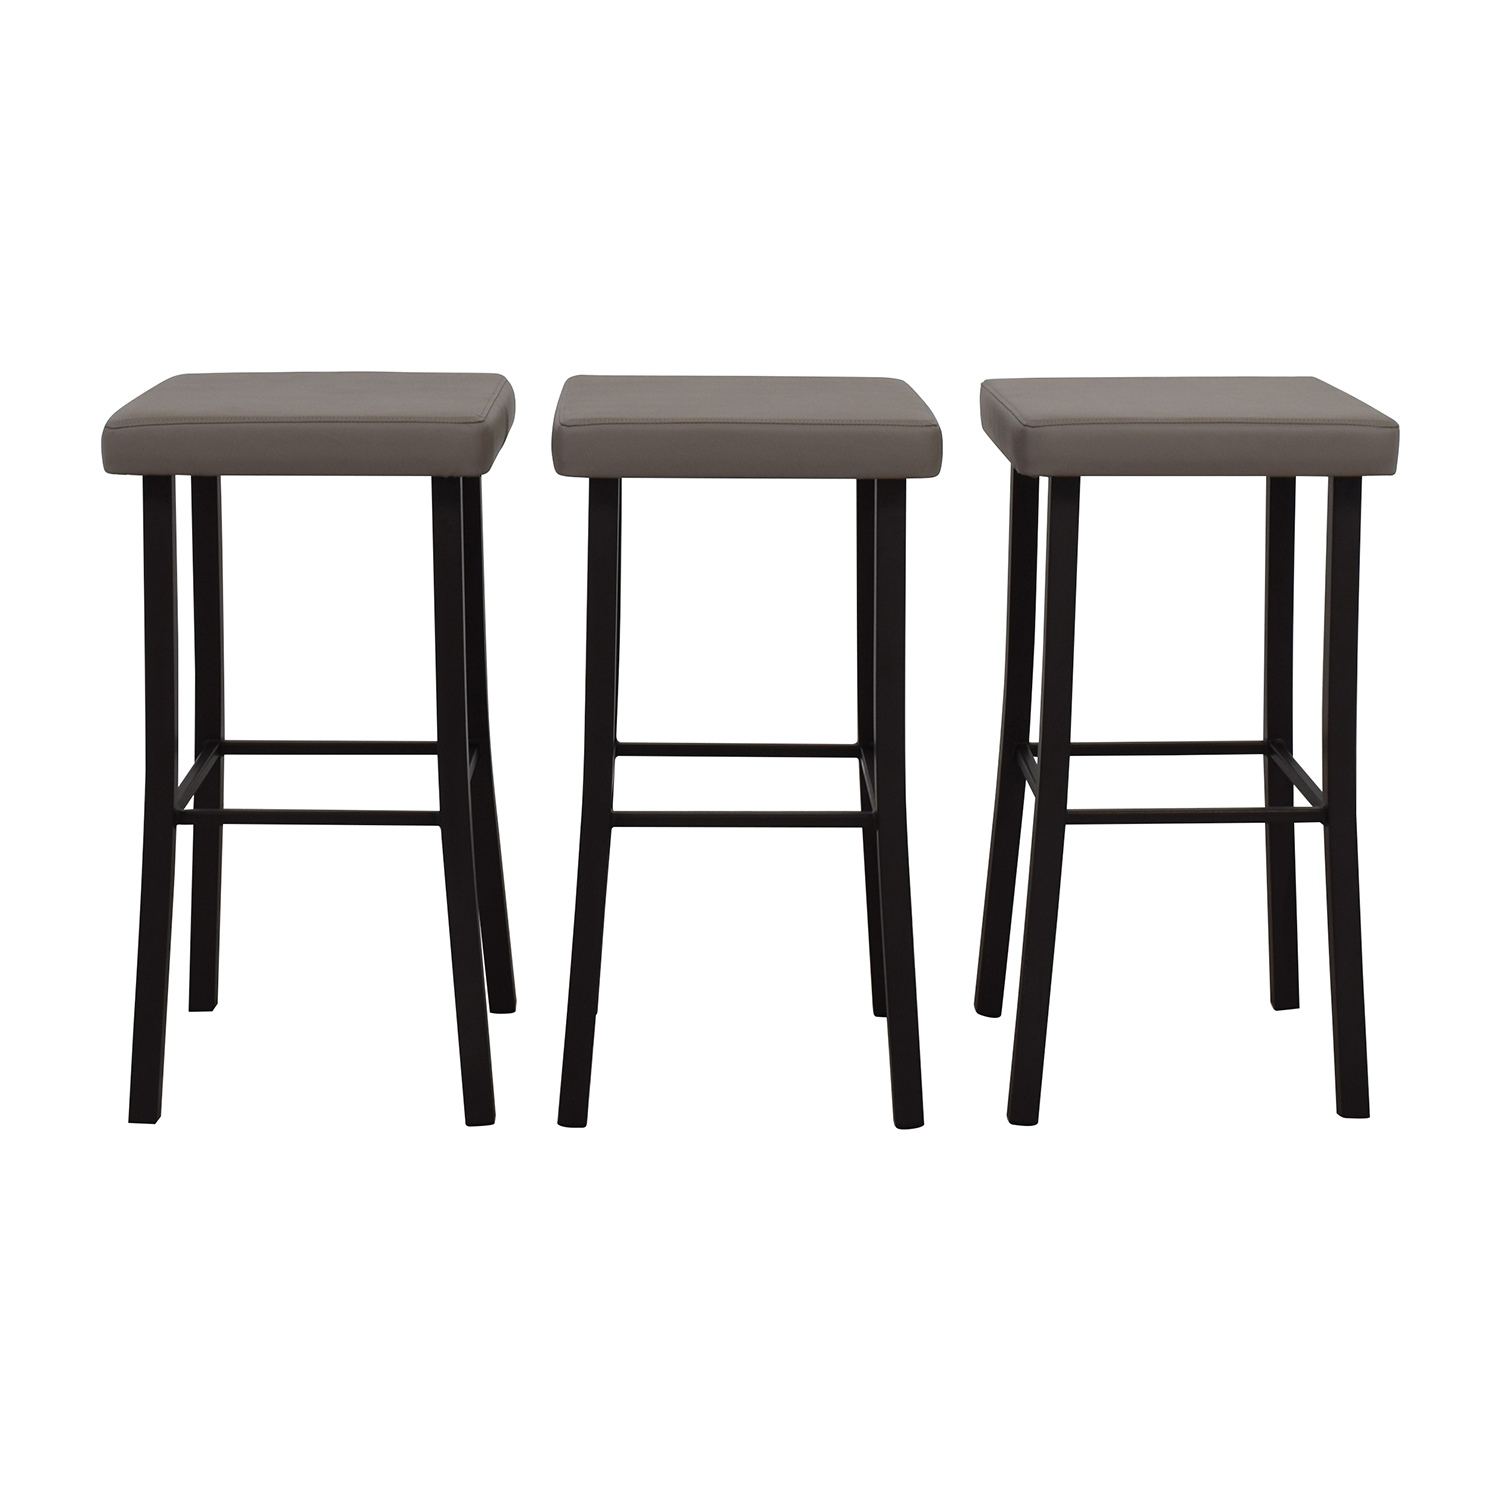 Amisco Amisco Ryan Grey Faux Leather Stool used